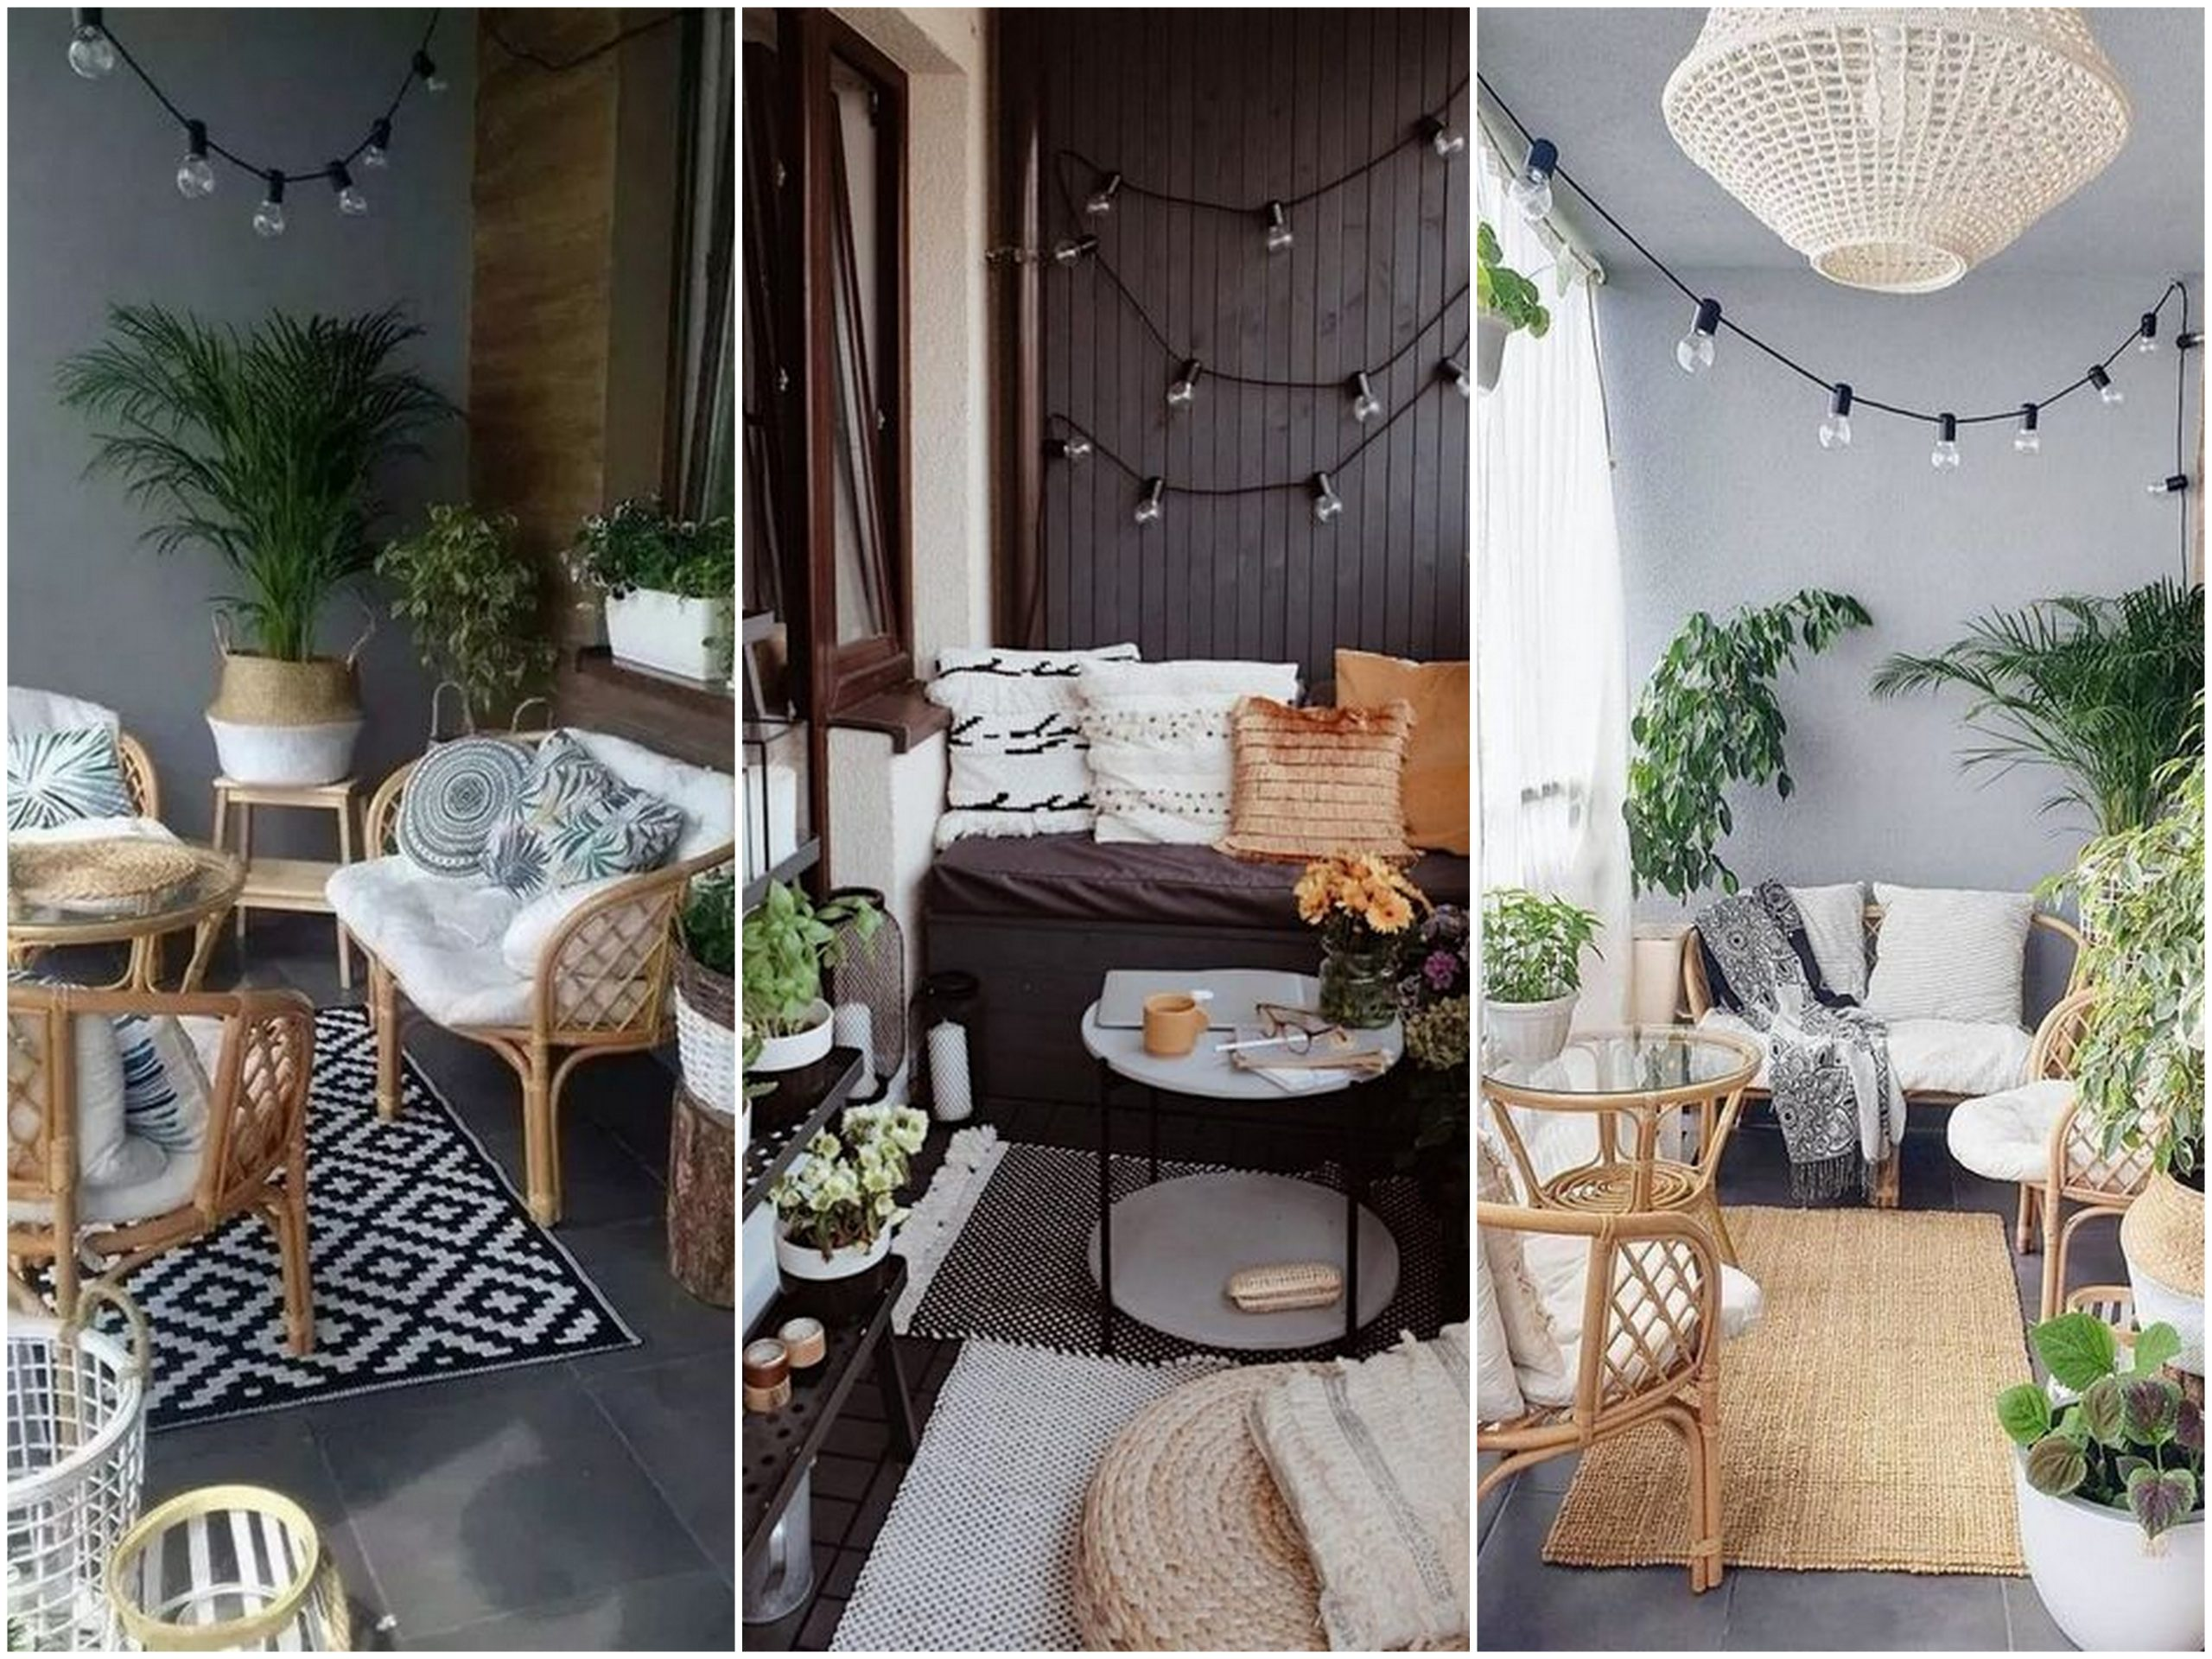 Incredible DIY Outdoor Space Ideas For Your Apartment Balcony